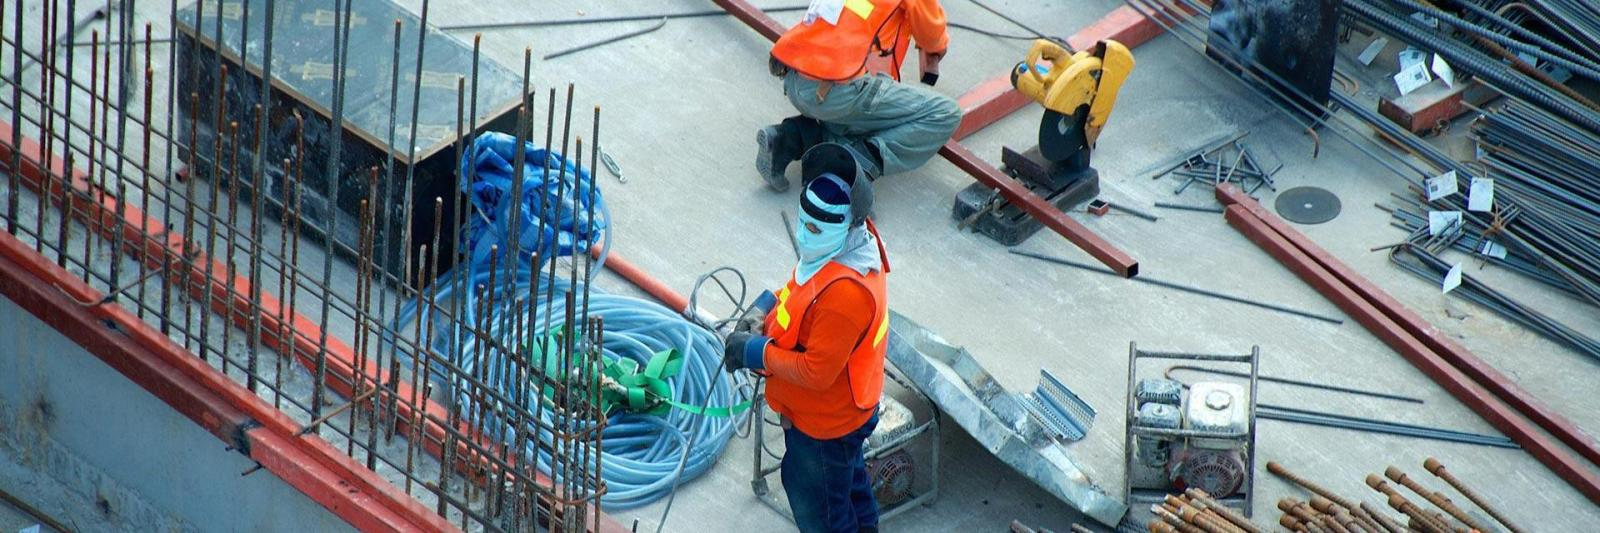 Contractor Services - Surety Bond Brokers - Get the bond you need